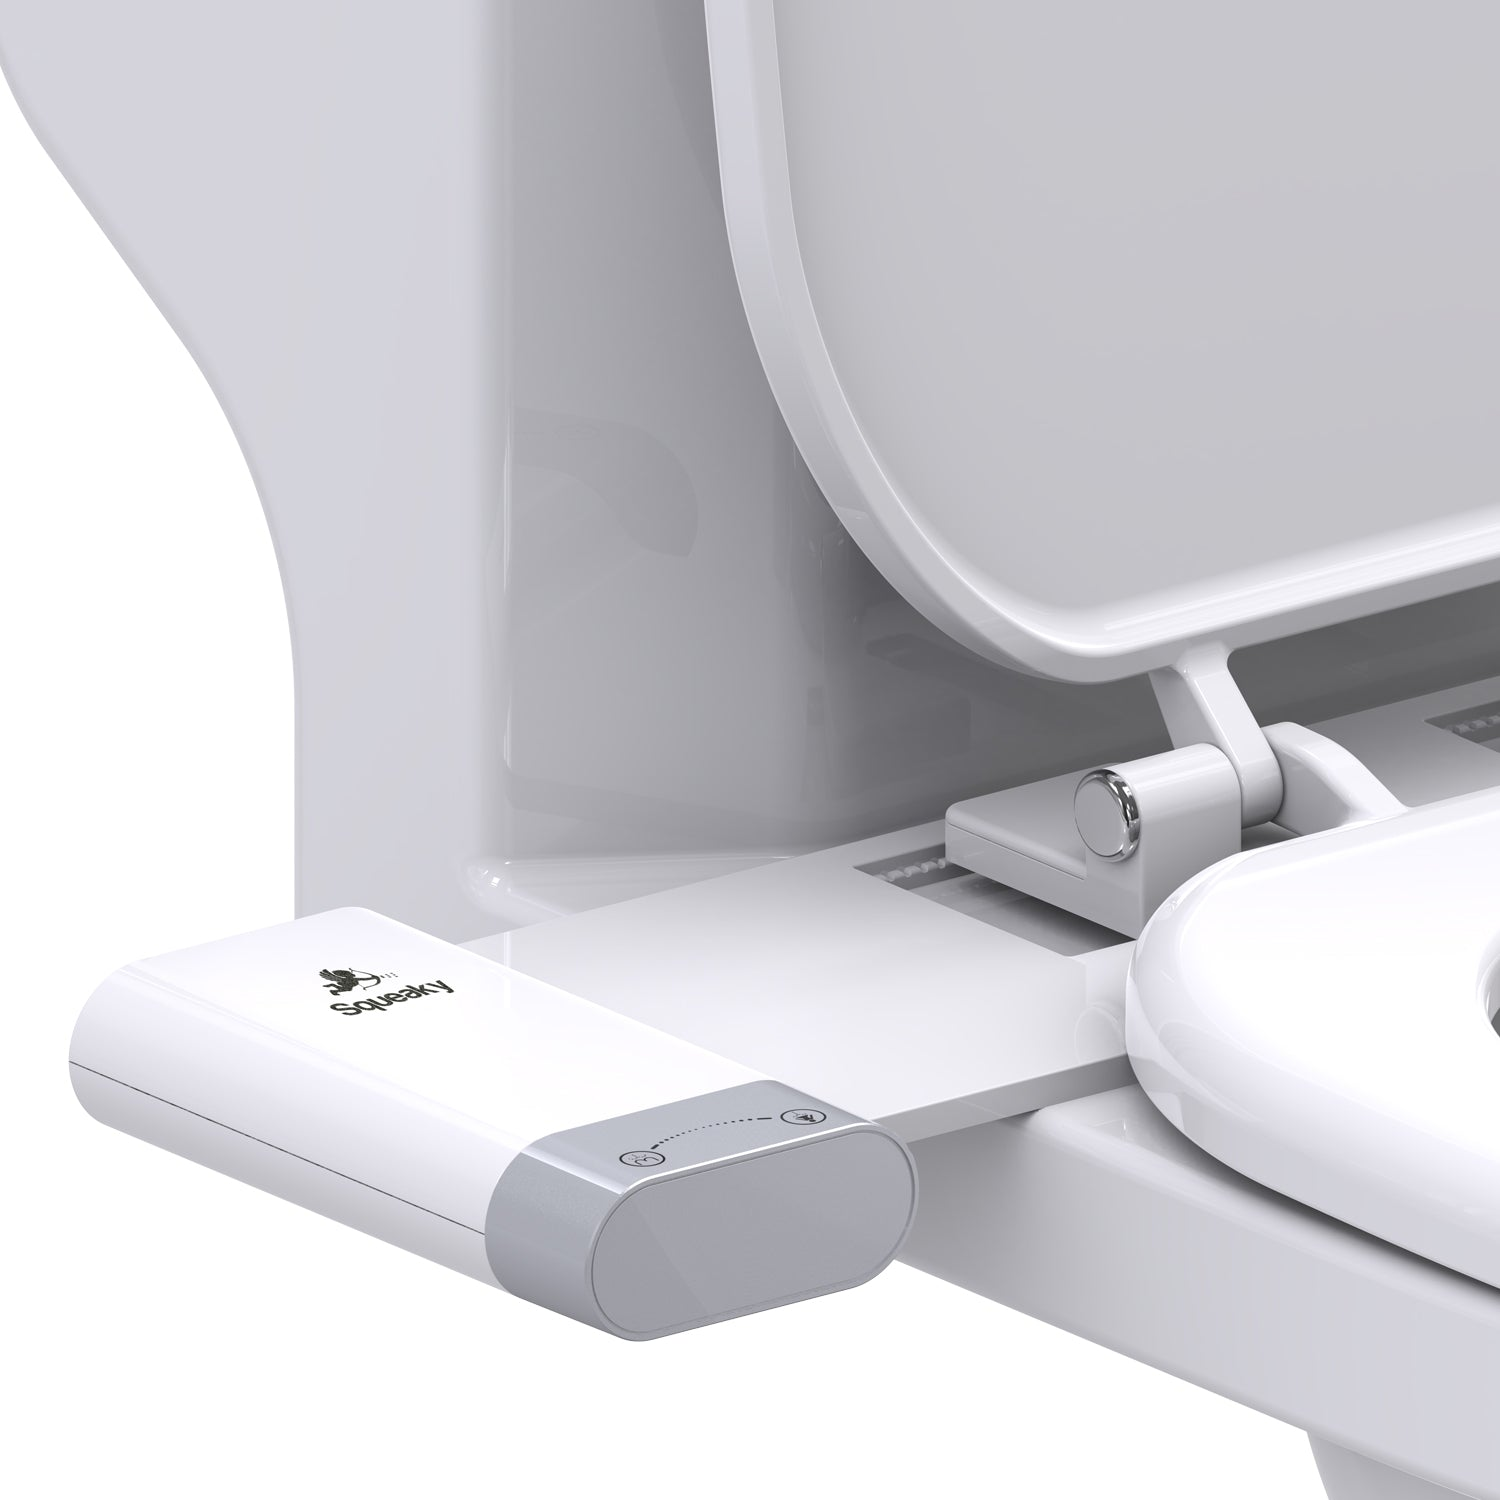 Shop Best Bidet Attachment for Toilet | Squeaky Life